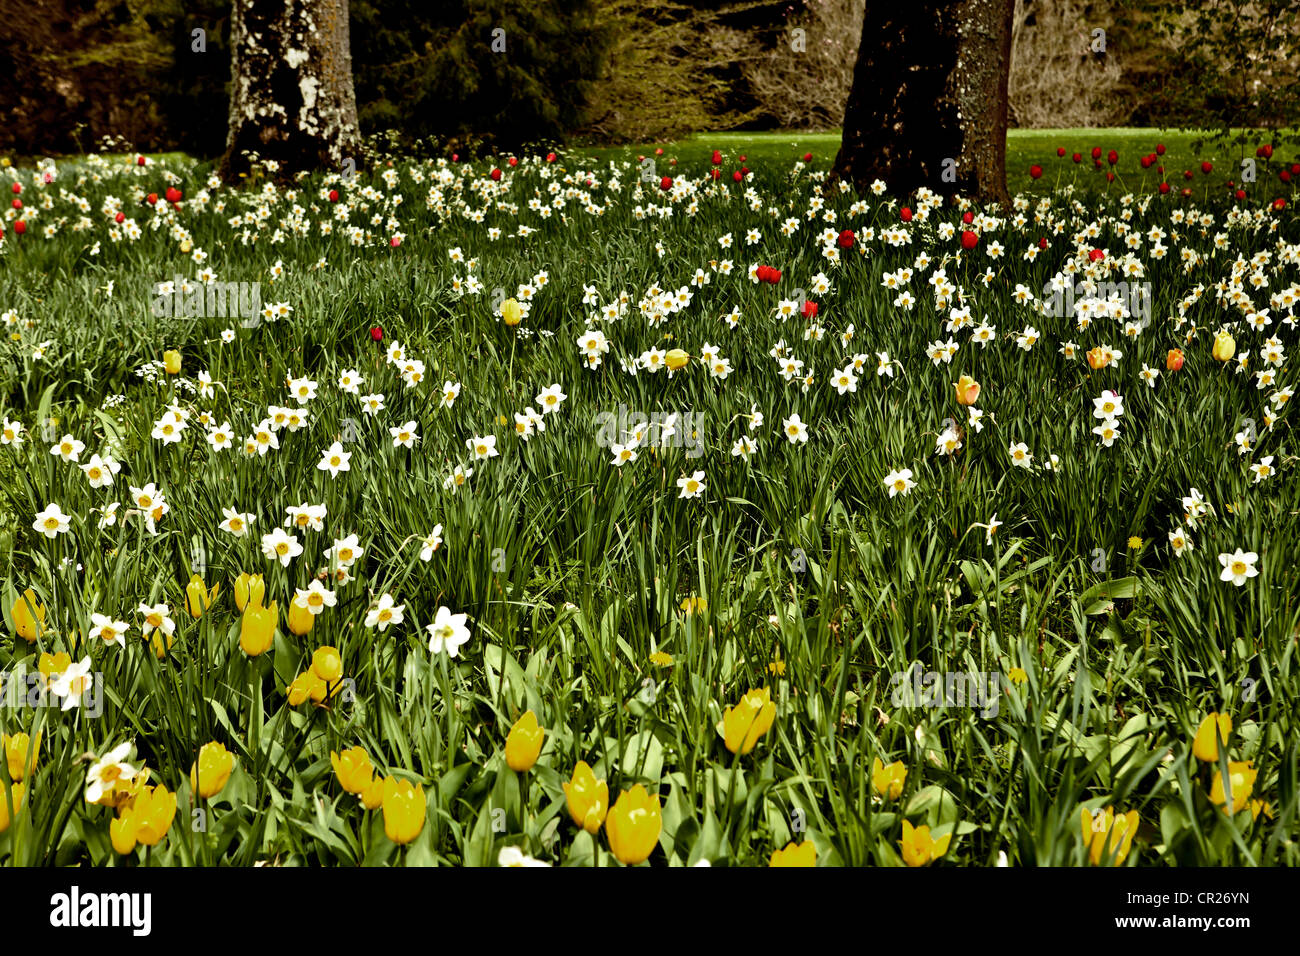 a field of flowers in spring with daffodils and tulips Stock Photo